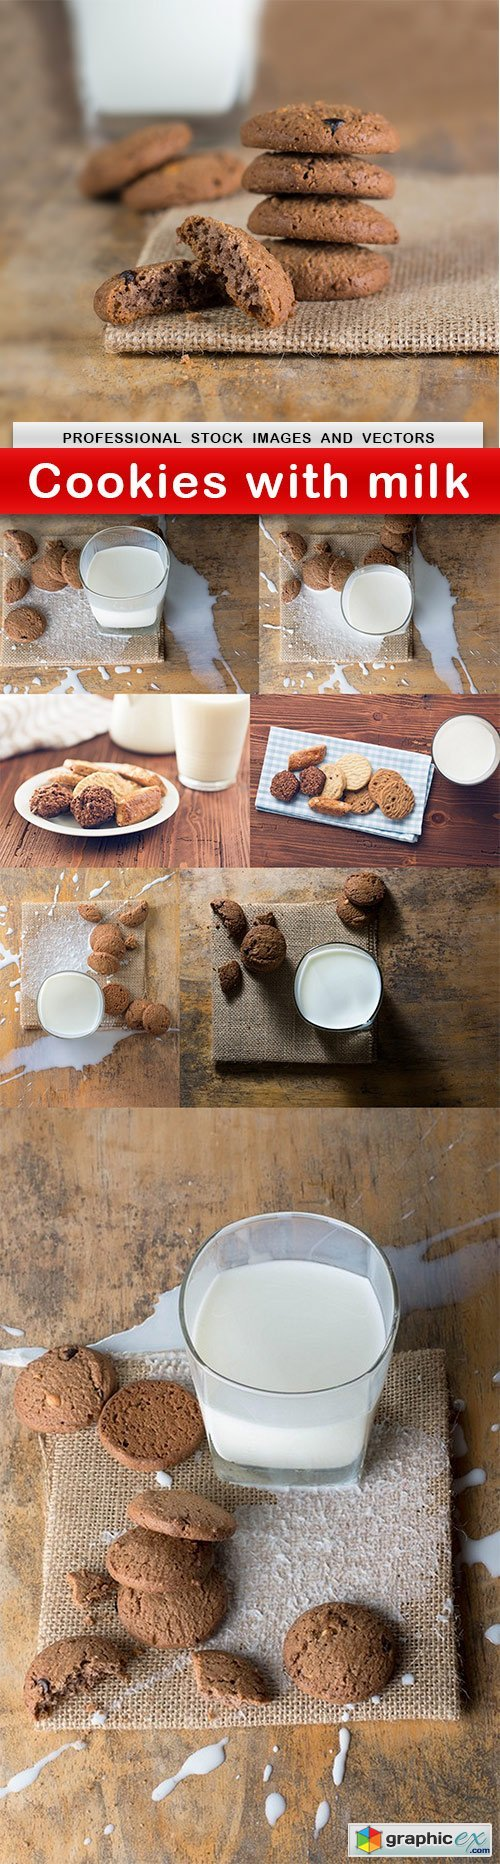 Cookies with milk - 8 UHQ JPEG